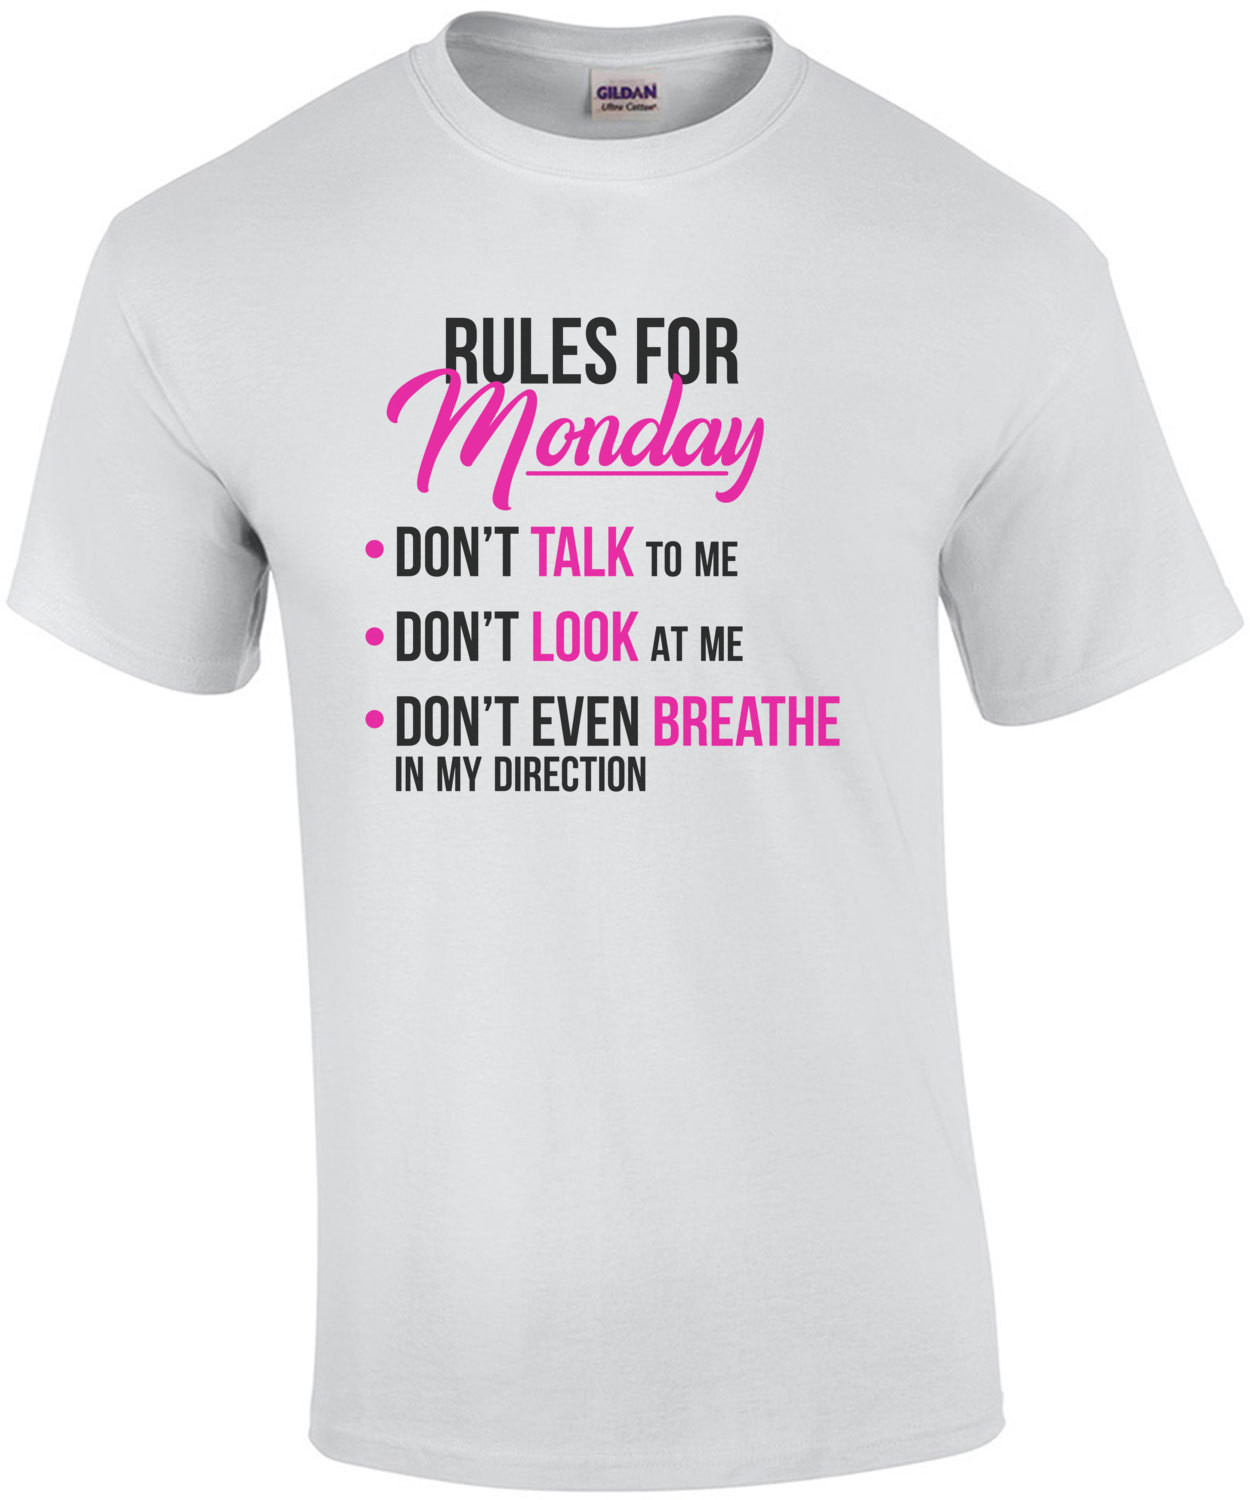 Rules For Monday - Don't Talk to me. Don't look at me. Don't breathe - funny t-shirt